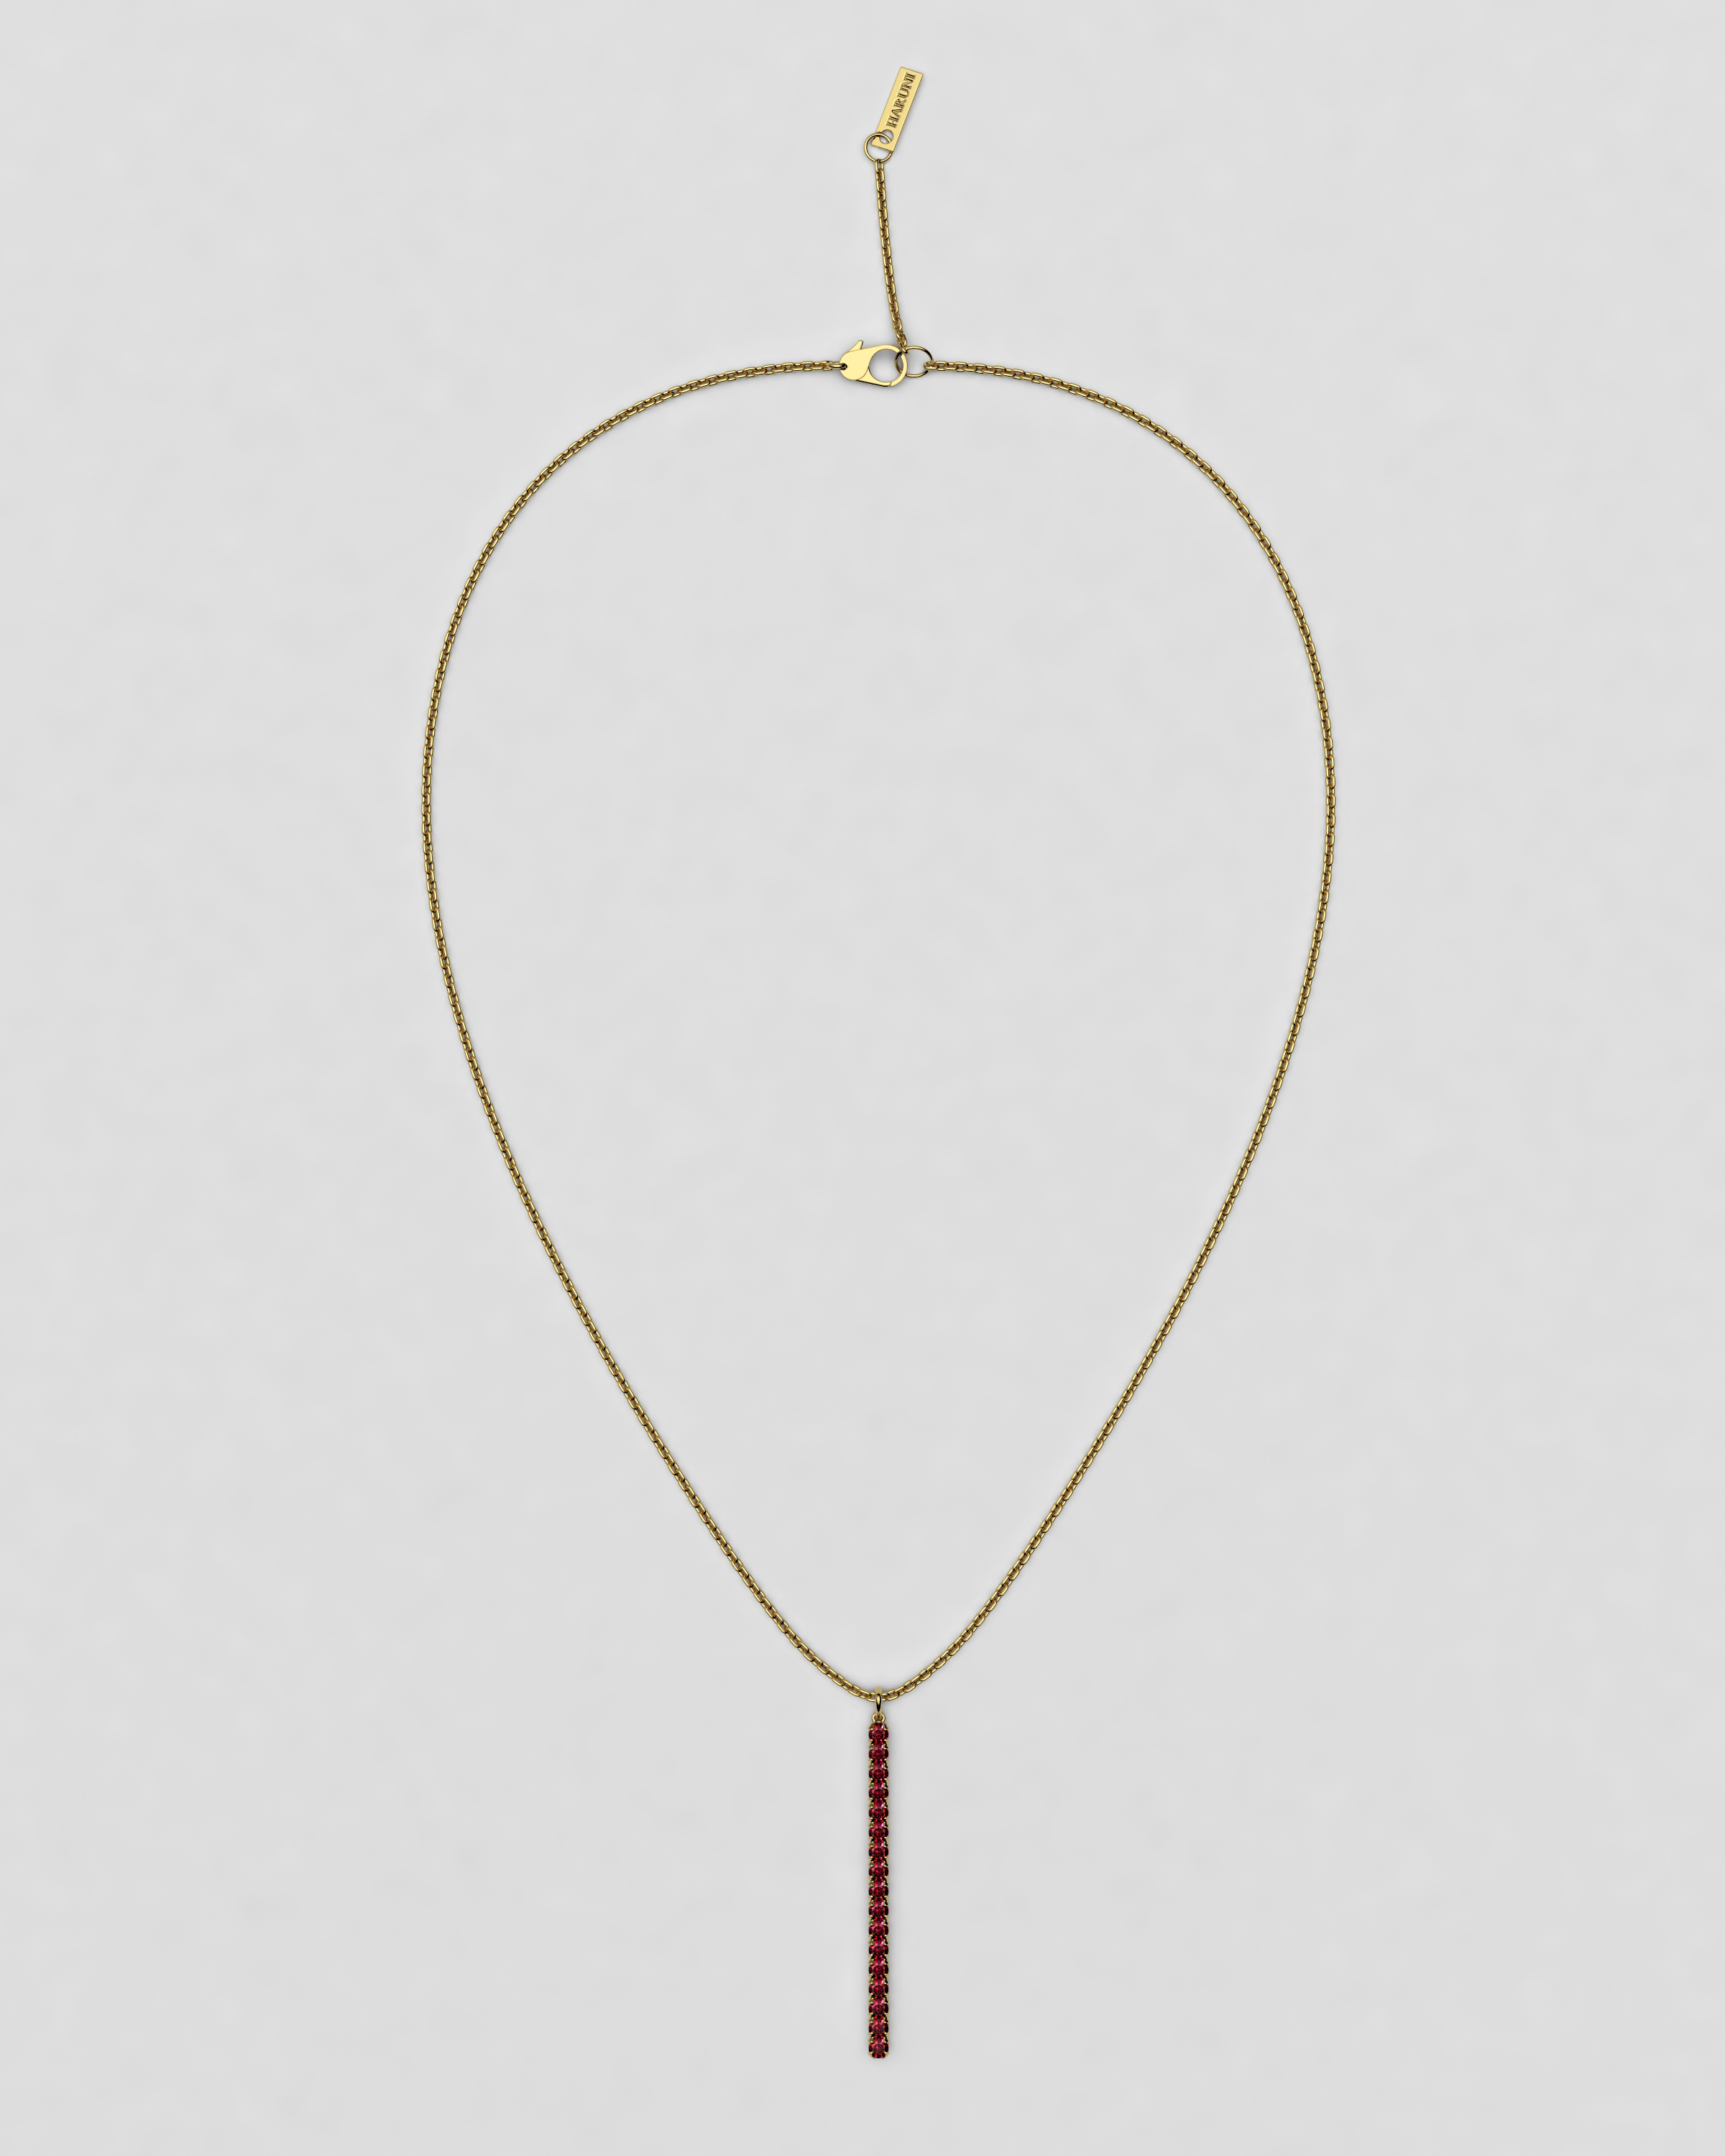 blossom necklace and long pendant  - ruby and 18k yellow gold